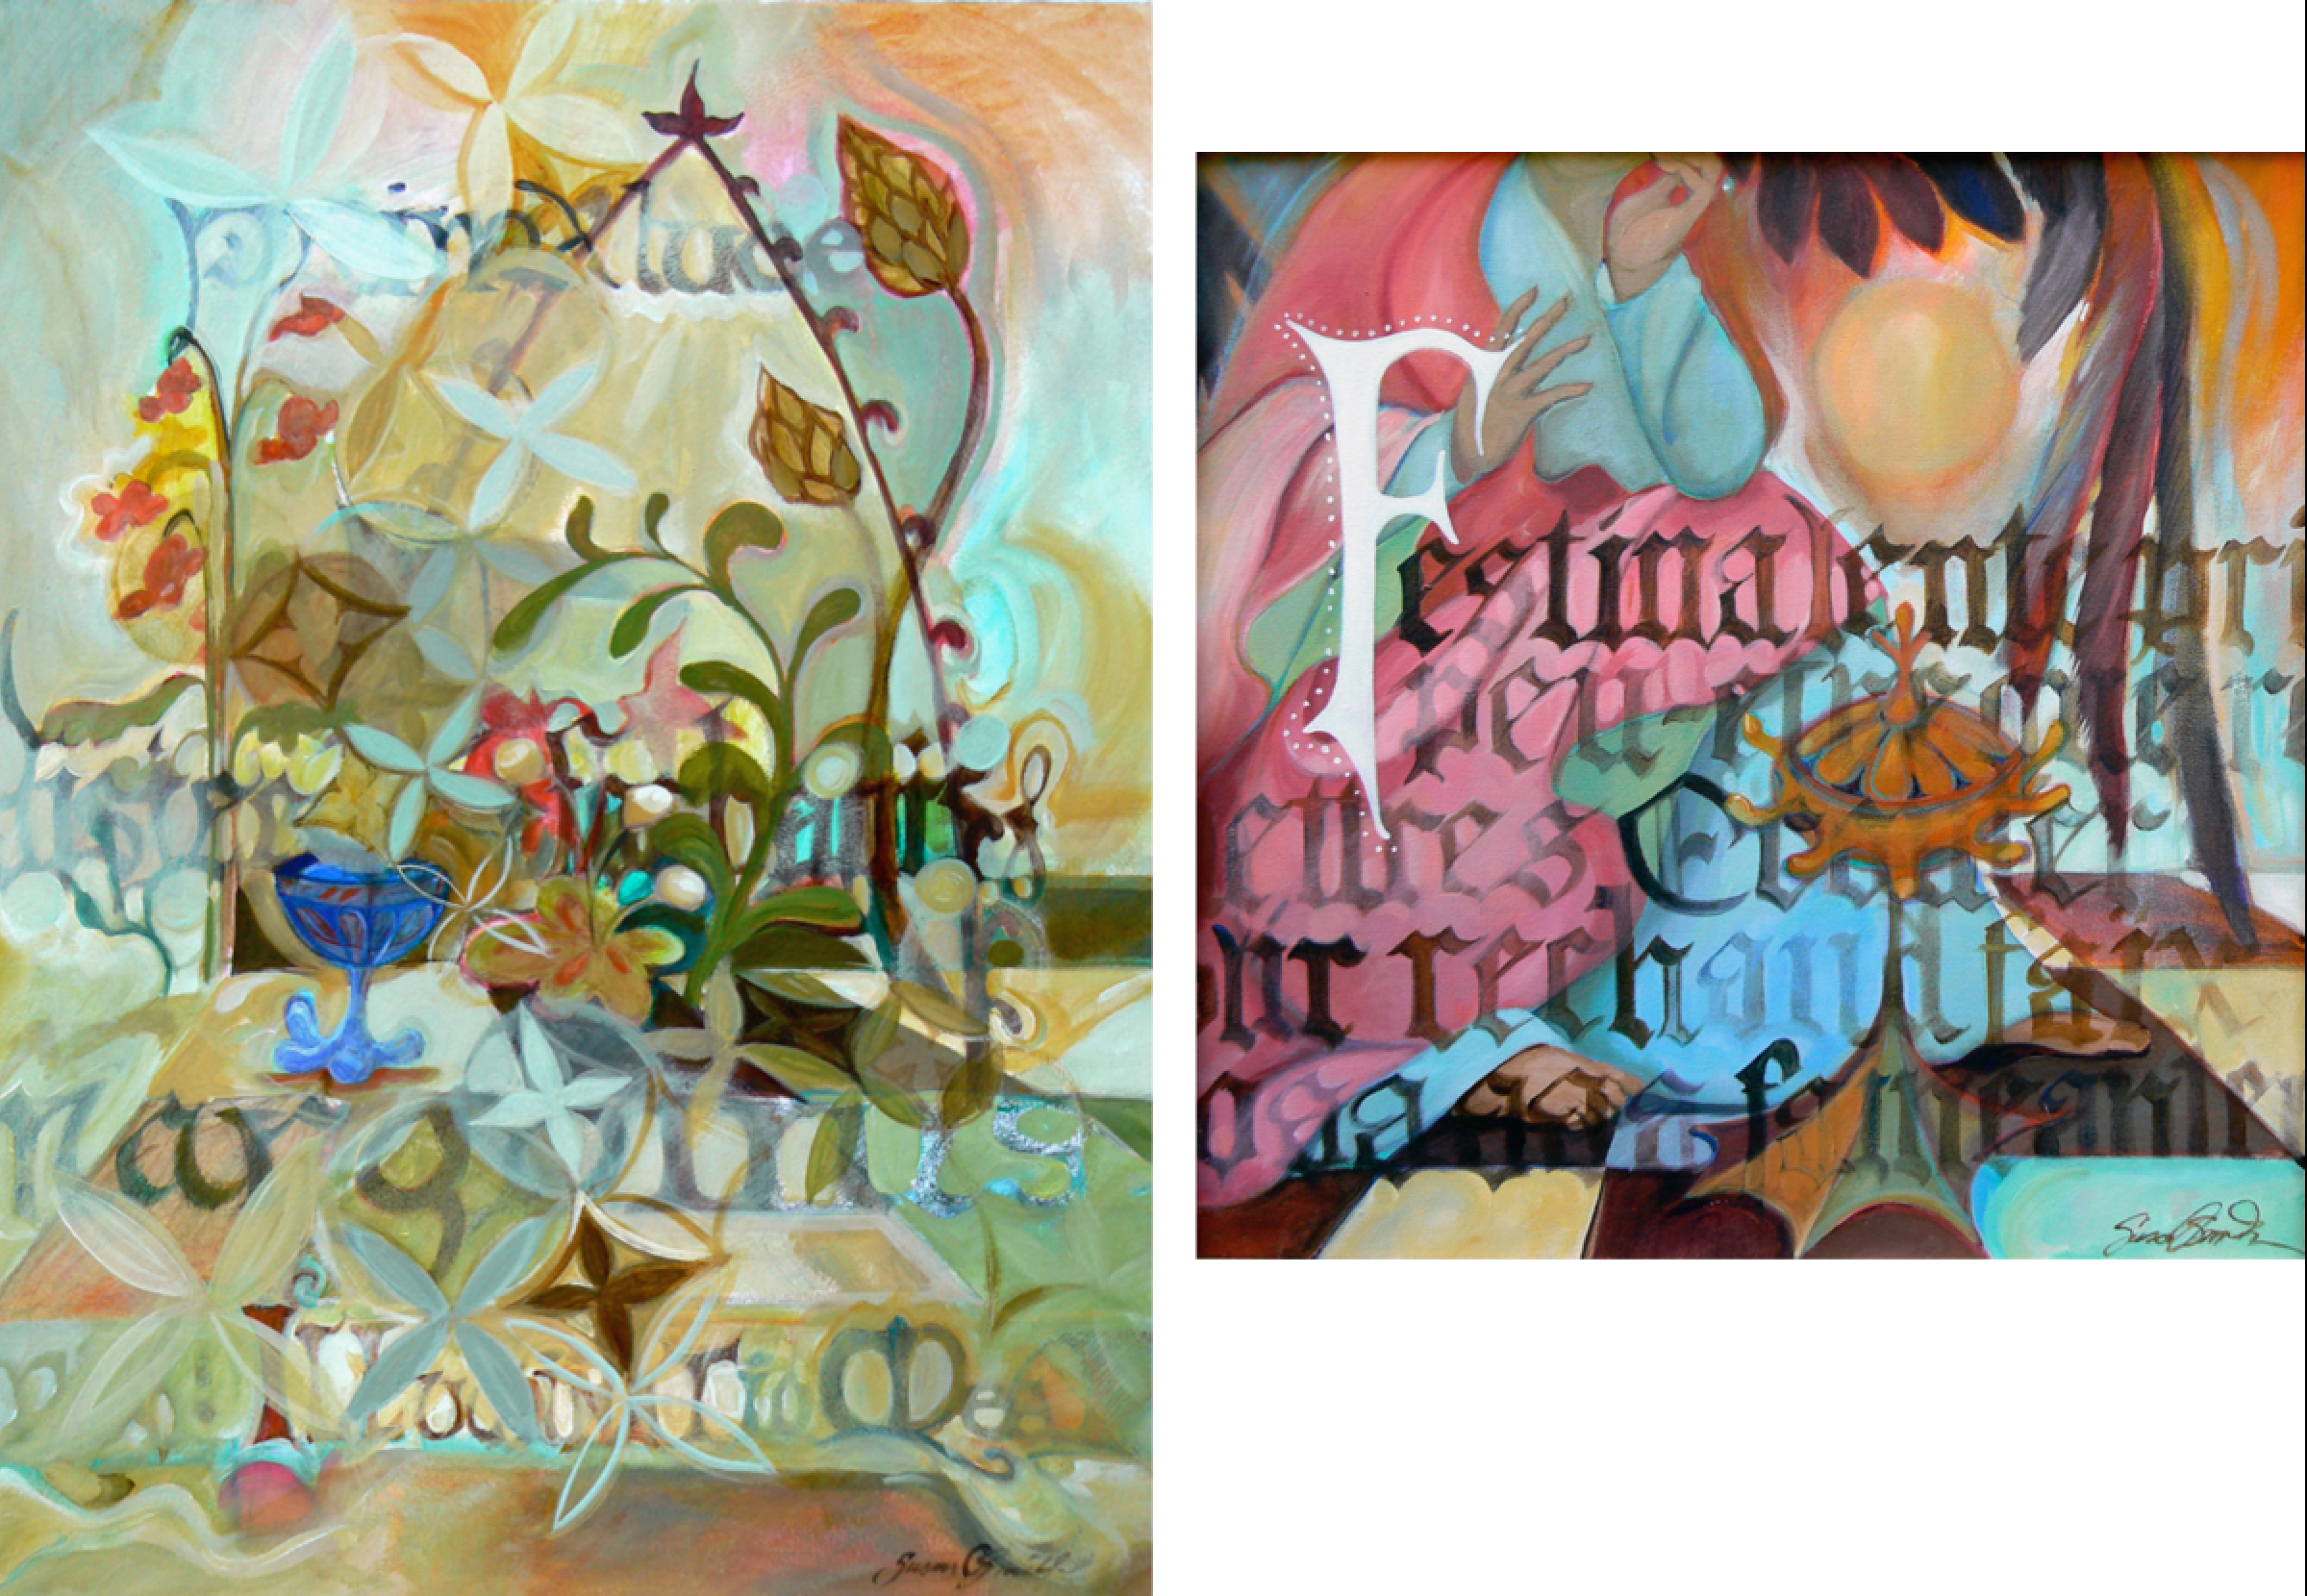 Prima Luce and  Faineanter   in acrylic by Susan Smith